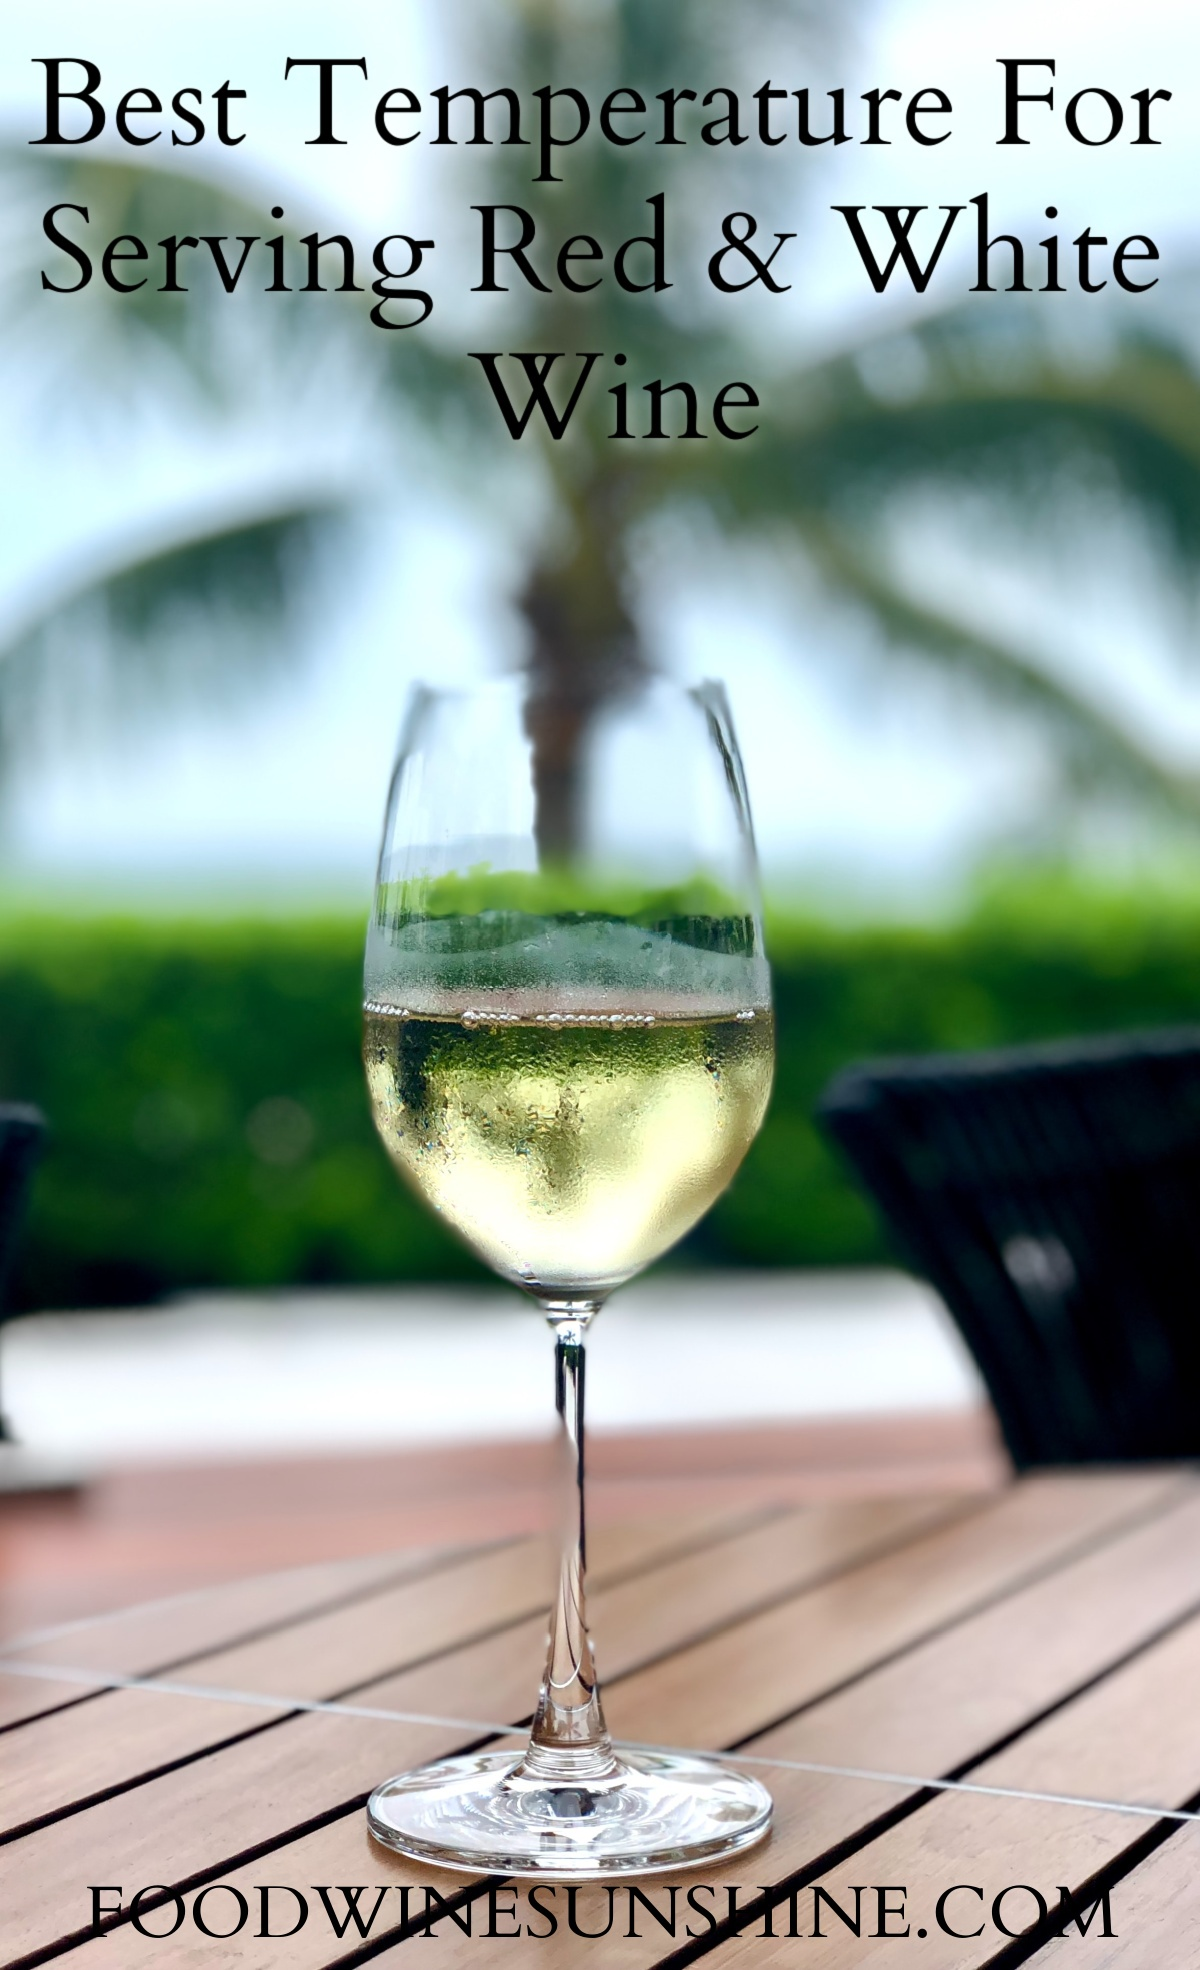 Best Temperatures For Serving Red & White Wine